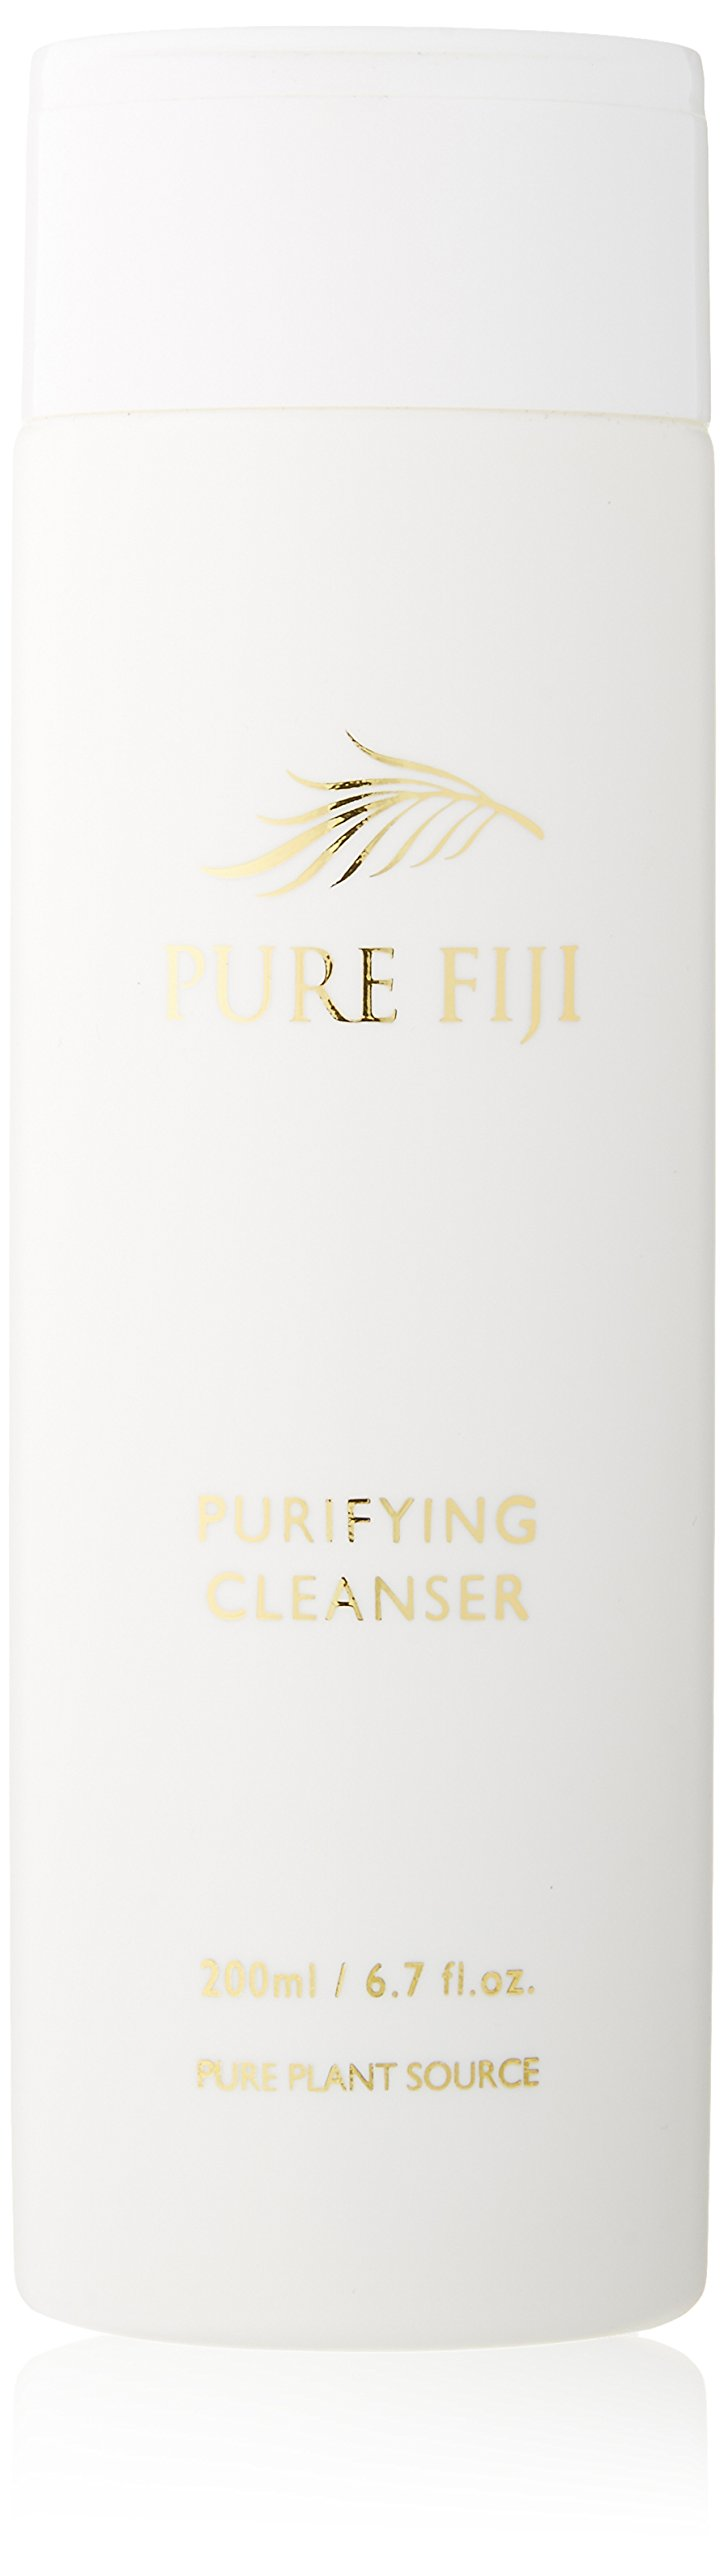 Pure Fiji Purifying Cleanser, 6.7 Ounce